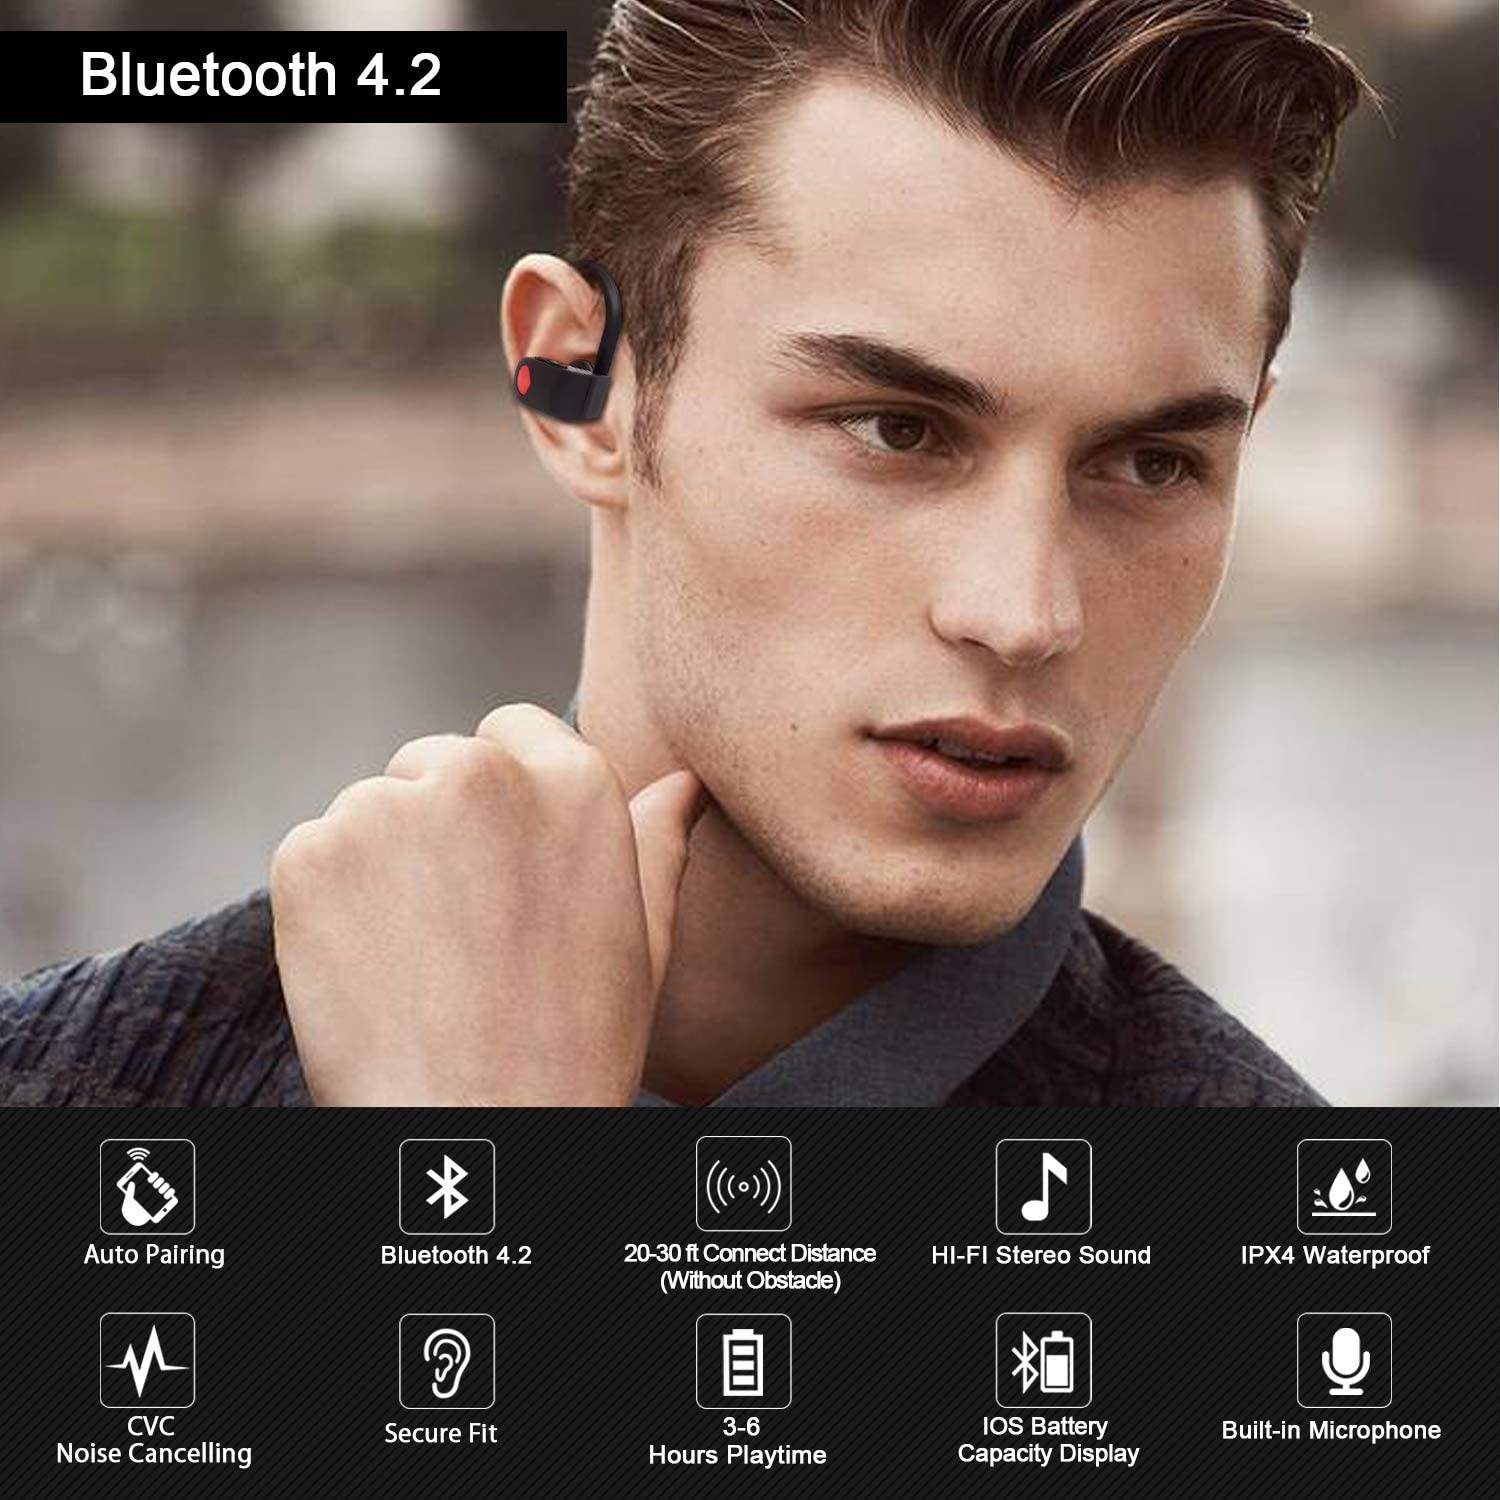 Bluetooth Headphones True Wireless Stereo Sport Earbuds, Bluetooth 5.0TWS in Ear Earphones with Mic, 3-6H Playtime IPX4 Sweatproof Noise Cancelling Headset for Running Workout